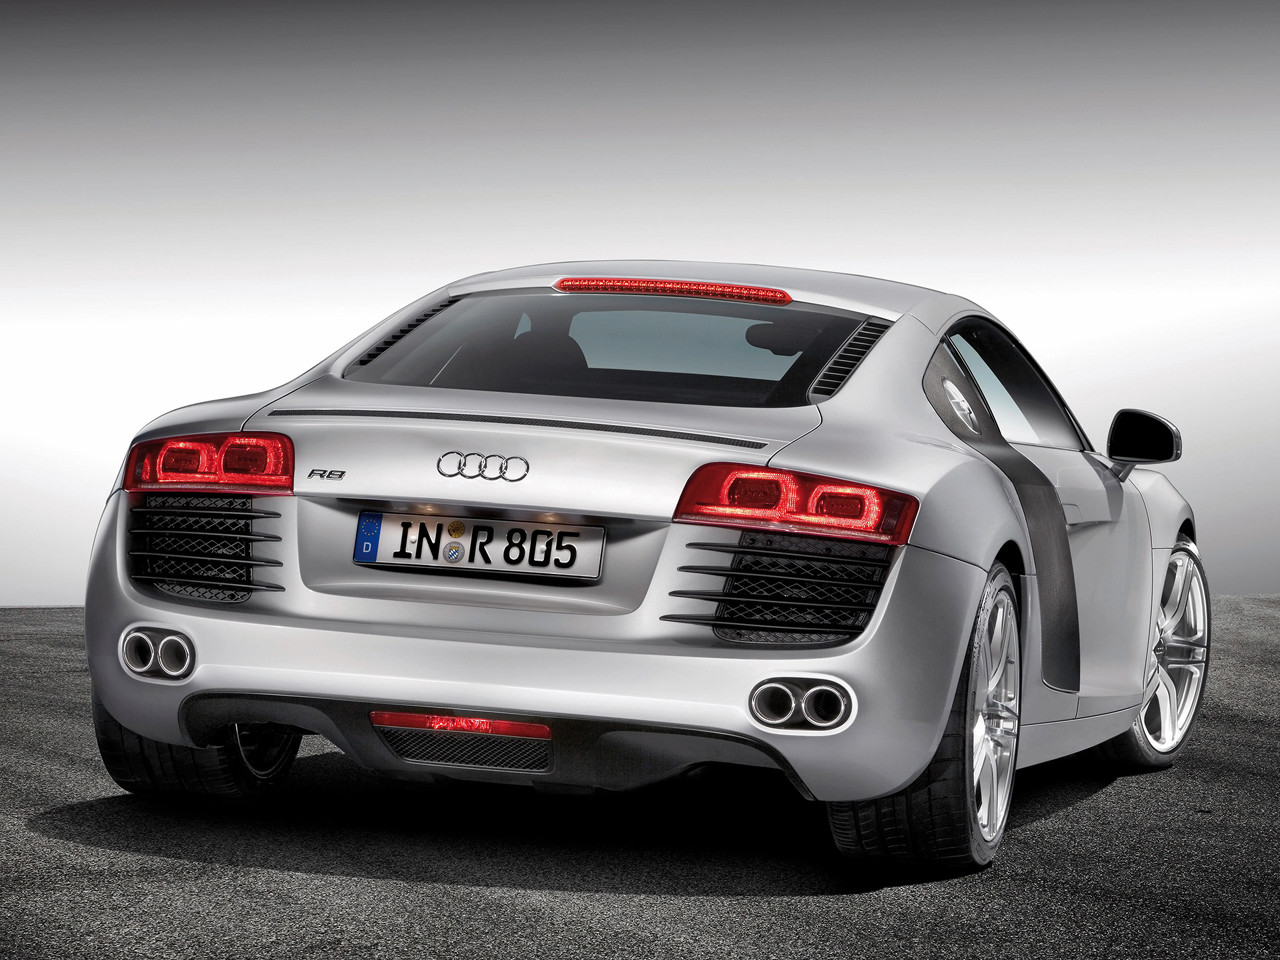 http://2.bp.blogspot.com/_T0UP2pQgRfA/TGxtpCKjeOI/AAAAAAAABHQ/Wk3oLS9rwTQ/s1600/cars-hd-wallpapers-audi-r8-7.jpg